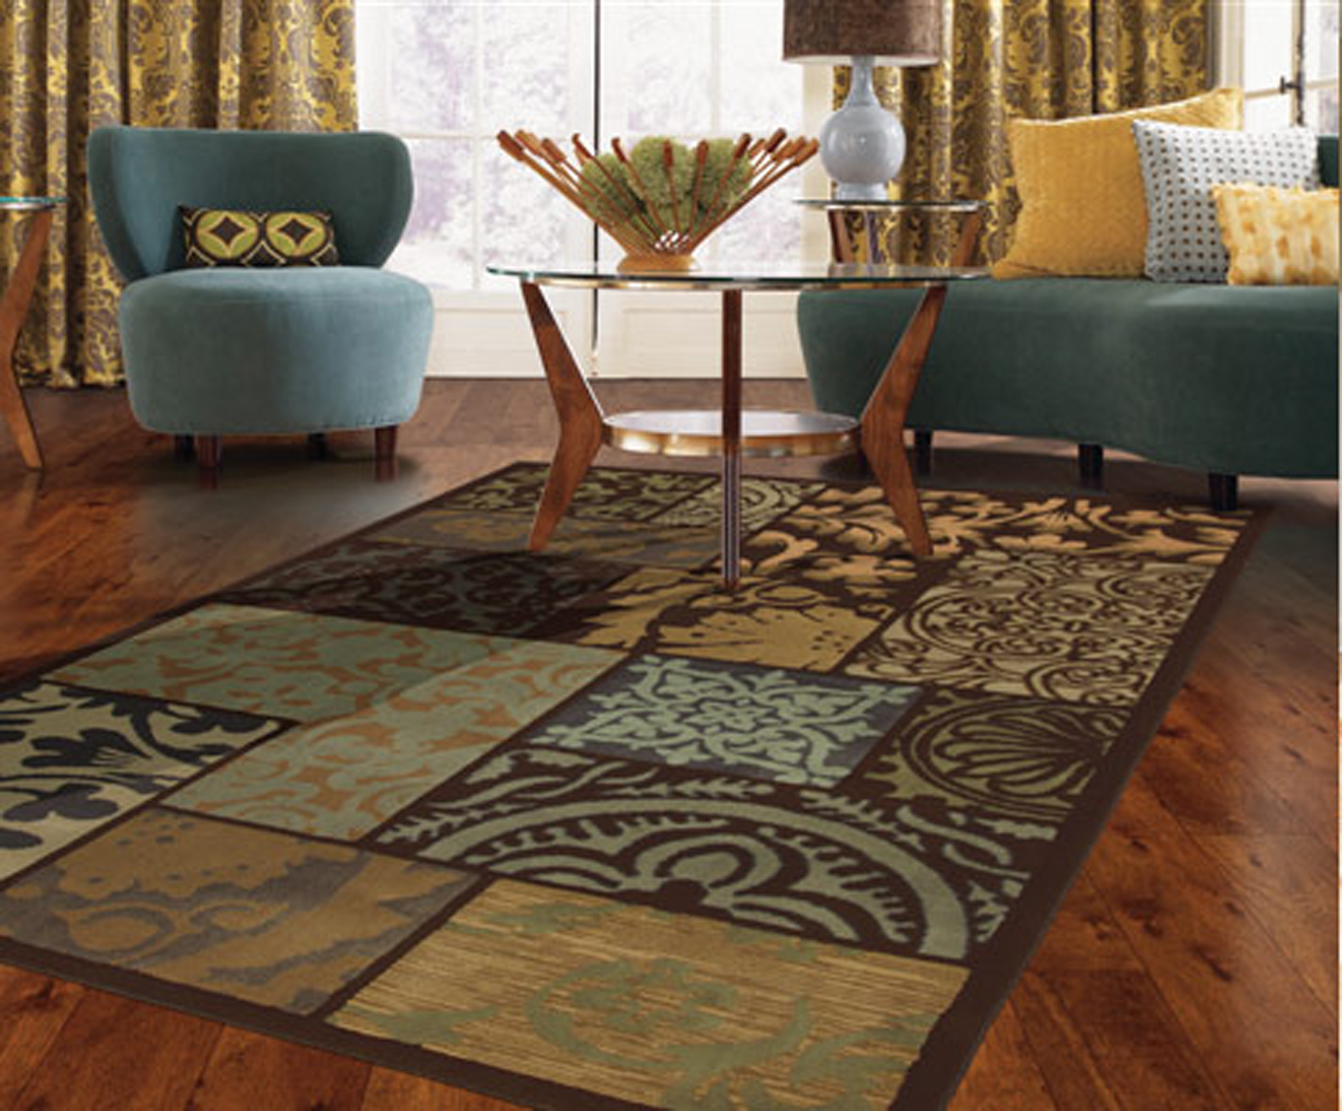 area rugs mid city carpets interiors sudbury ontario. Black Bedroom Furniture Sets. Home Design Ideas